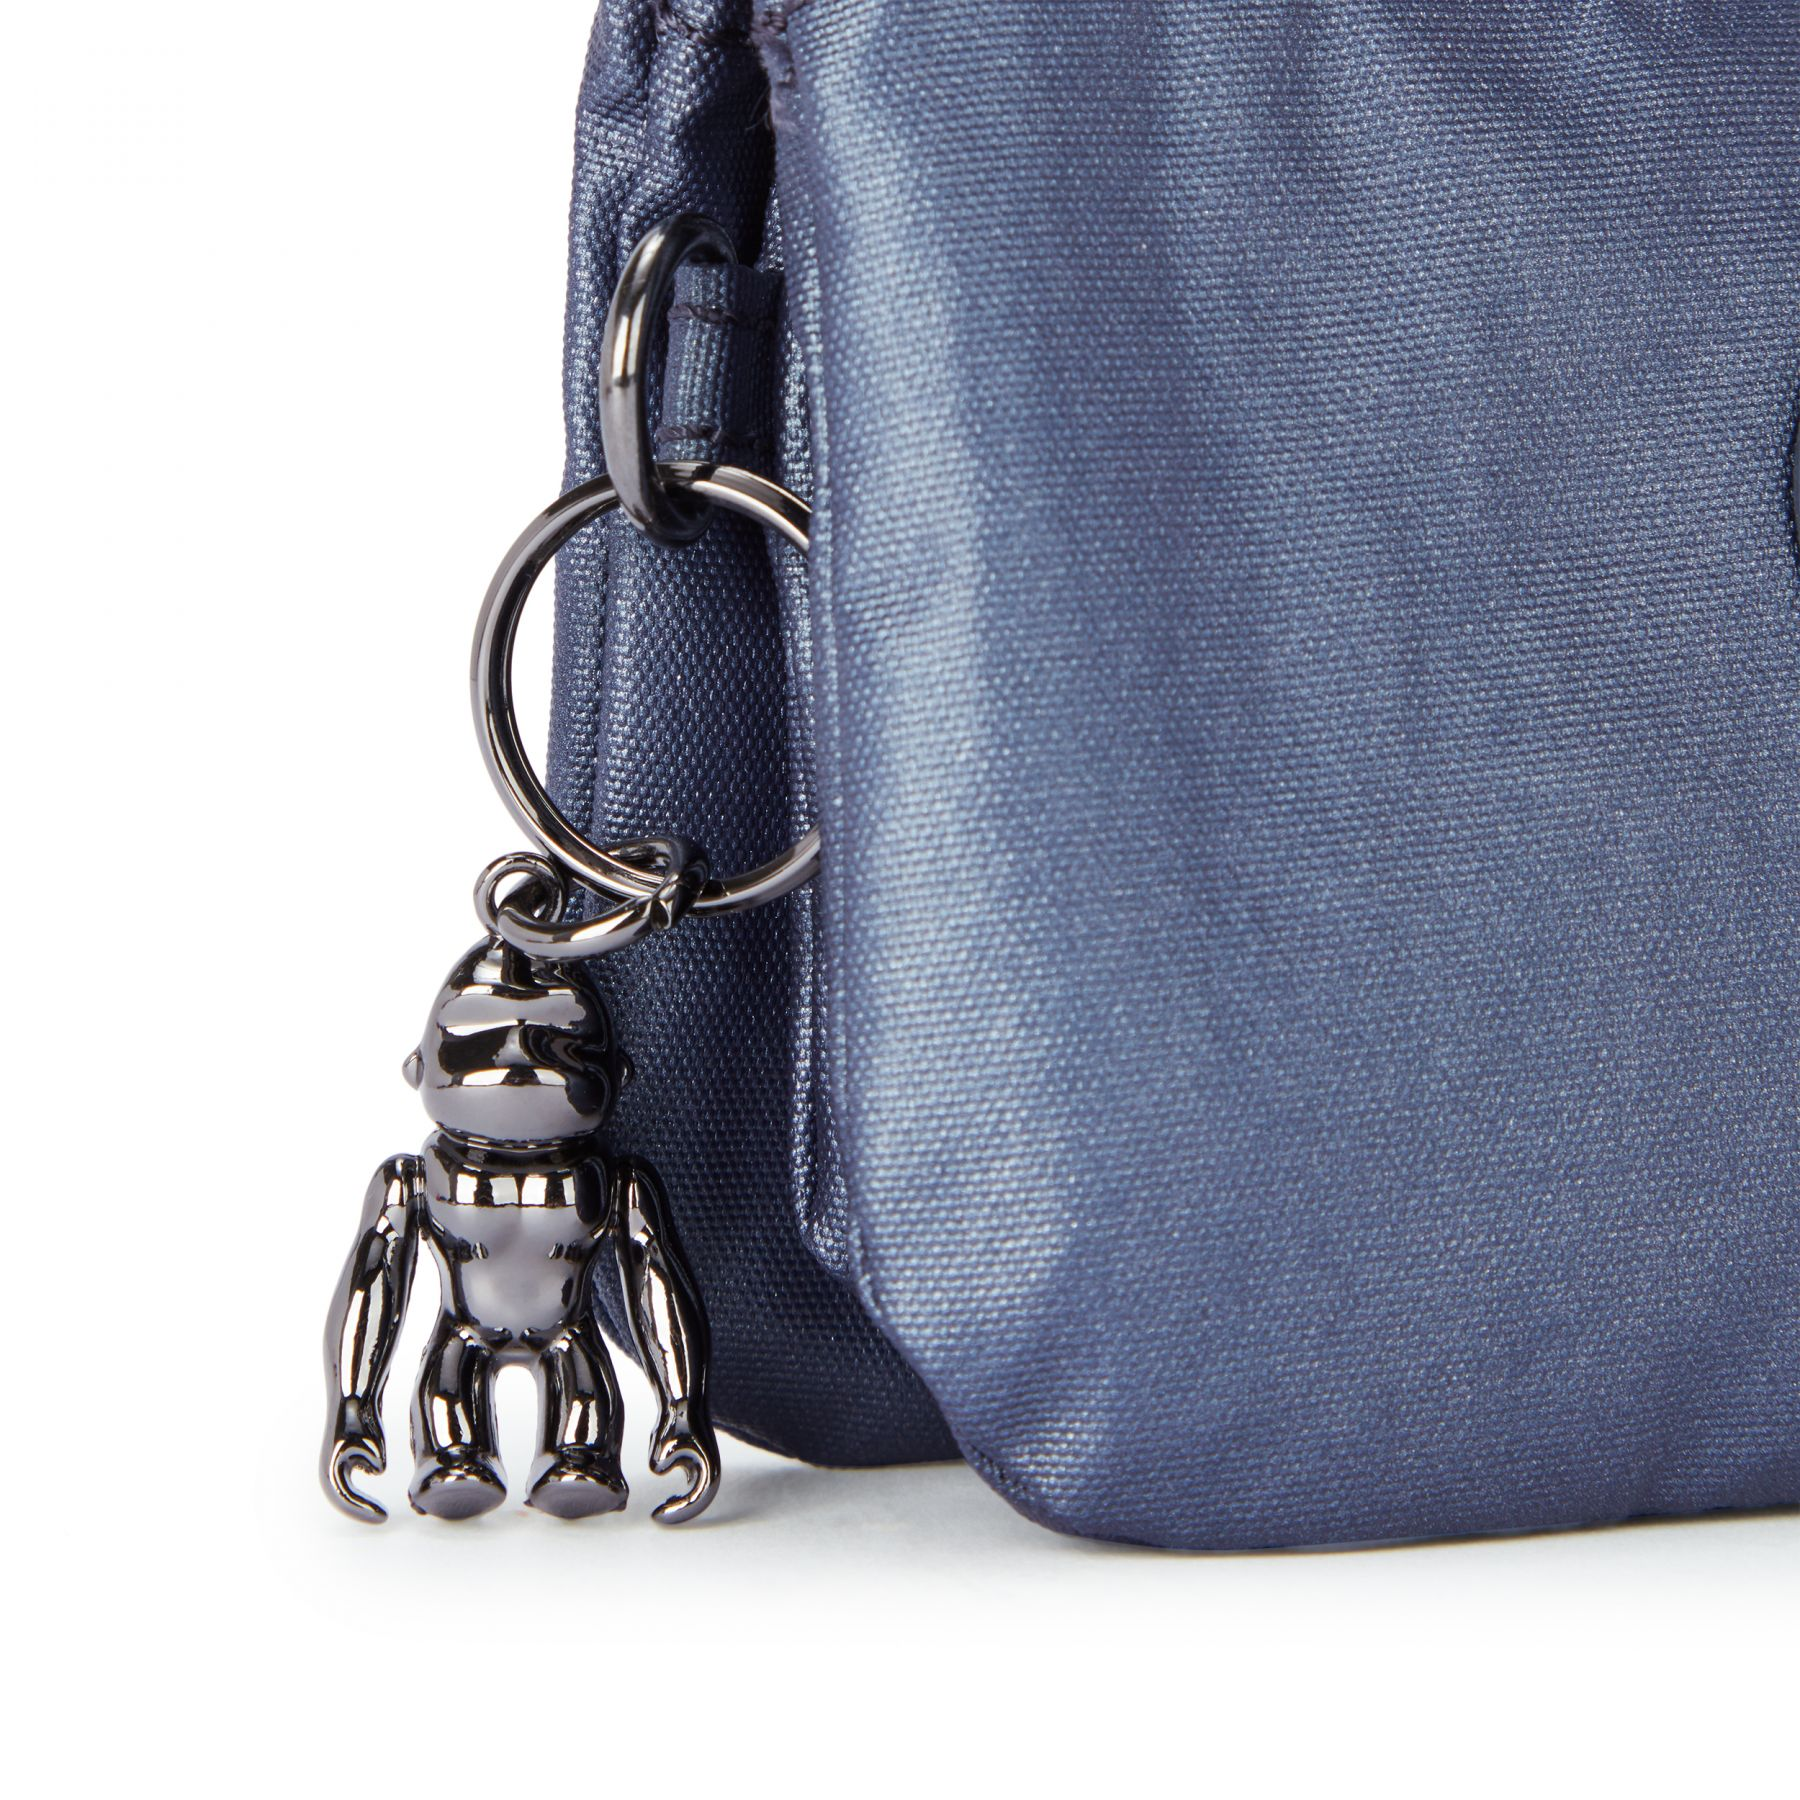 CREATIVITY S OUTLET by Kipling